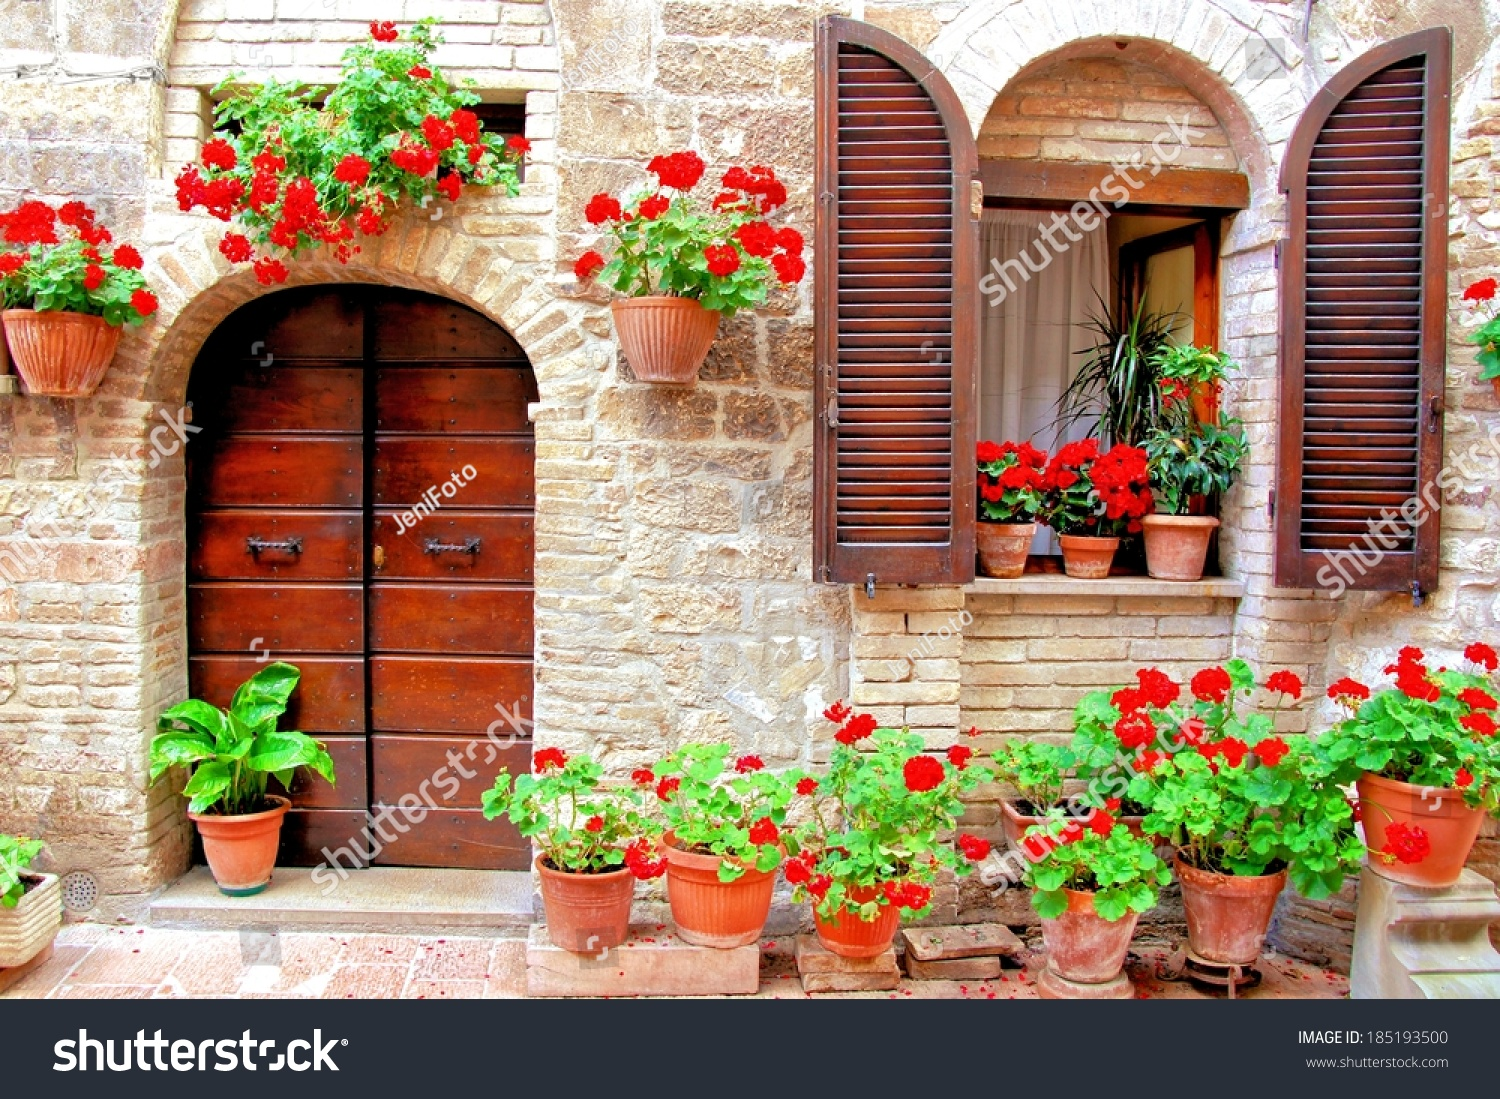 Italian house front colorful potted flowers stock photo for Italianhouse